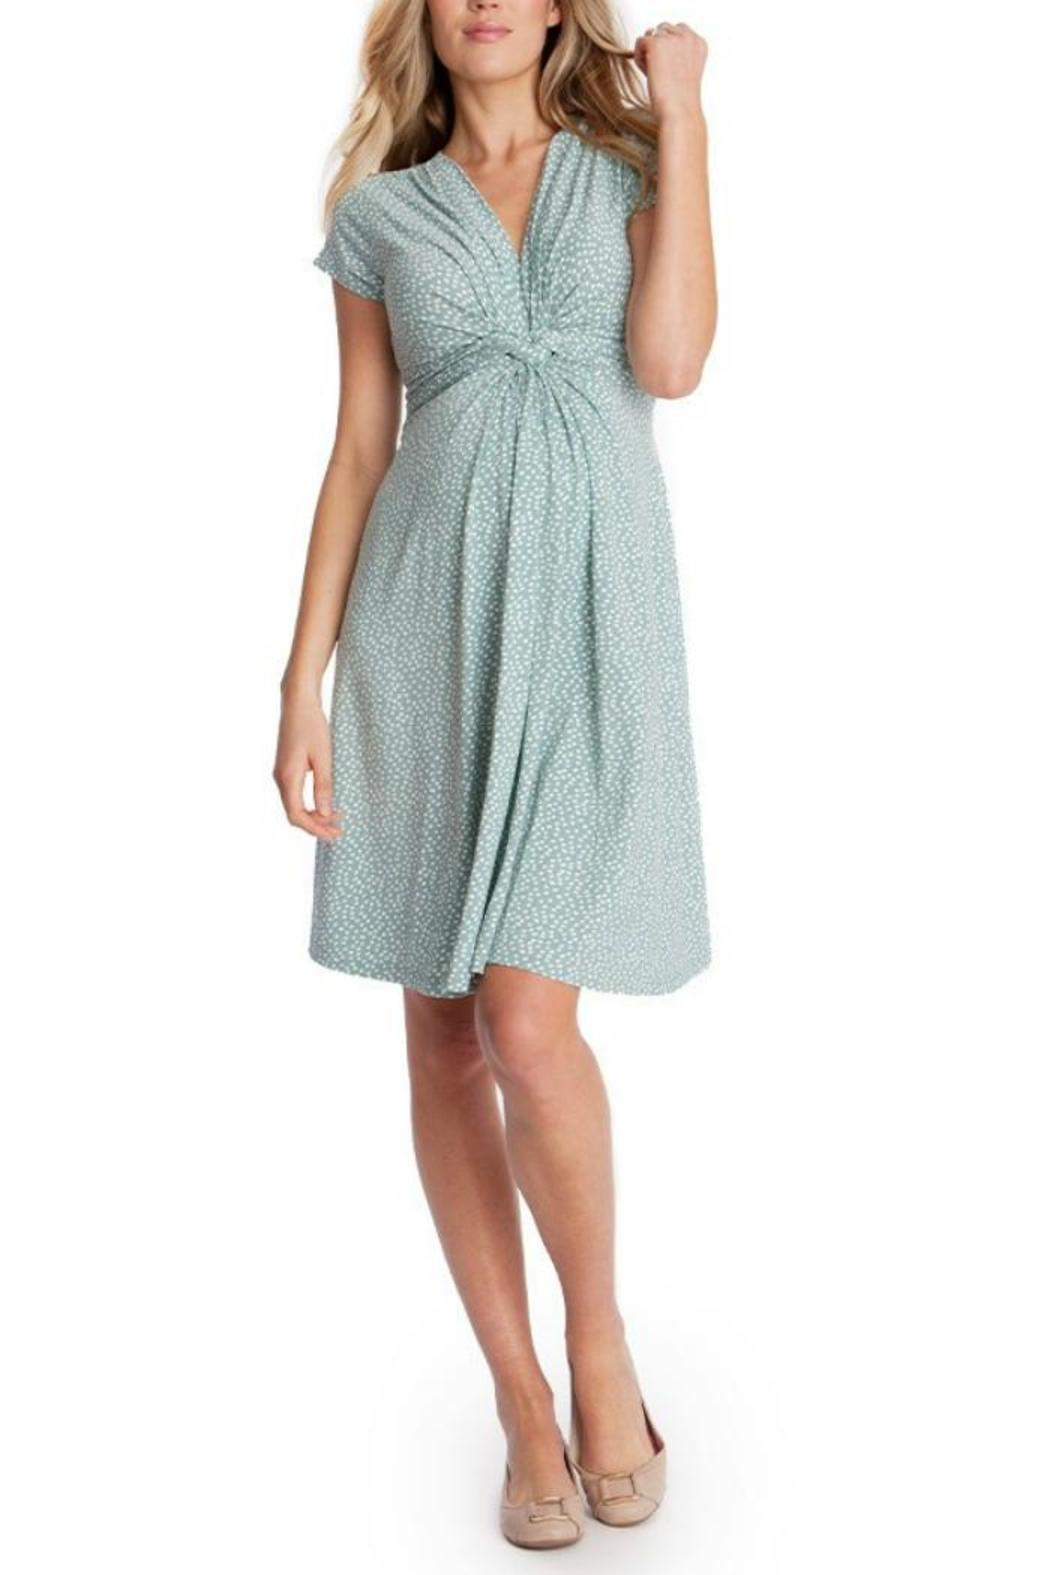 05a6e91878cac Seraphine Jolene Dot Dress from Alabama by The Swanky Stork — Shoptiques